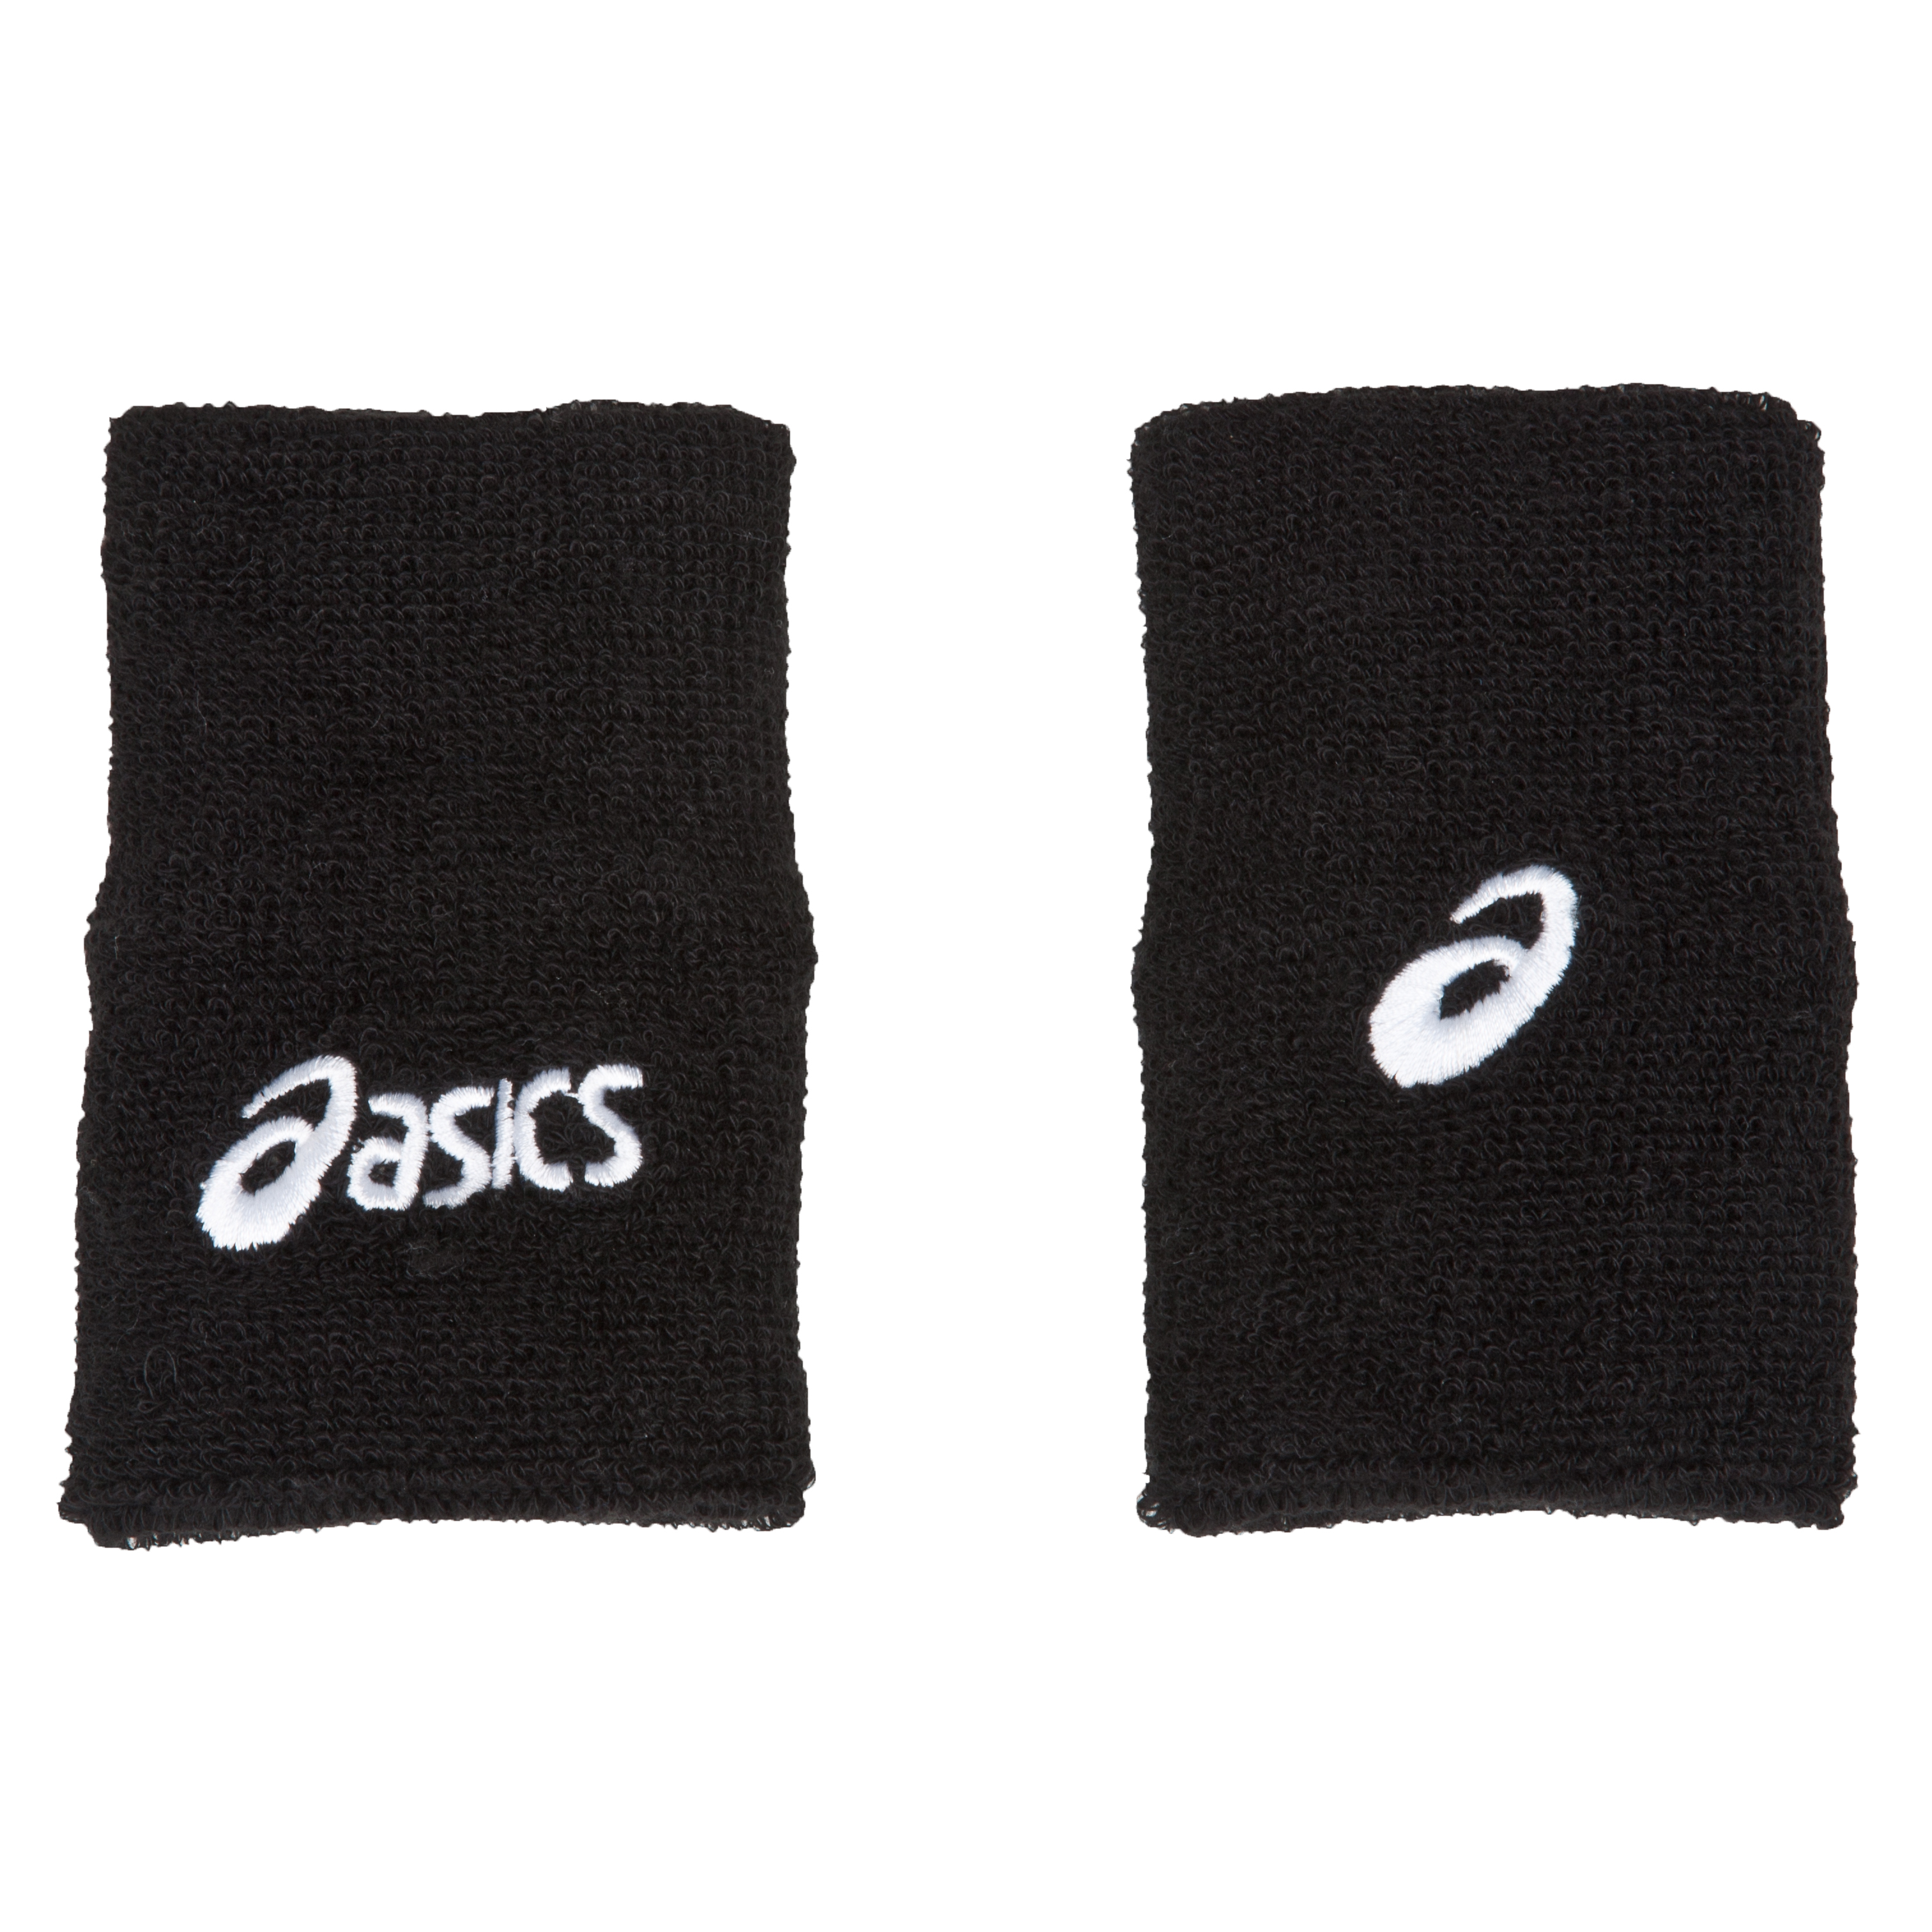 Asics Wristband - Performance Black